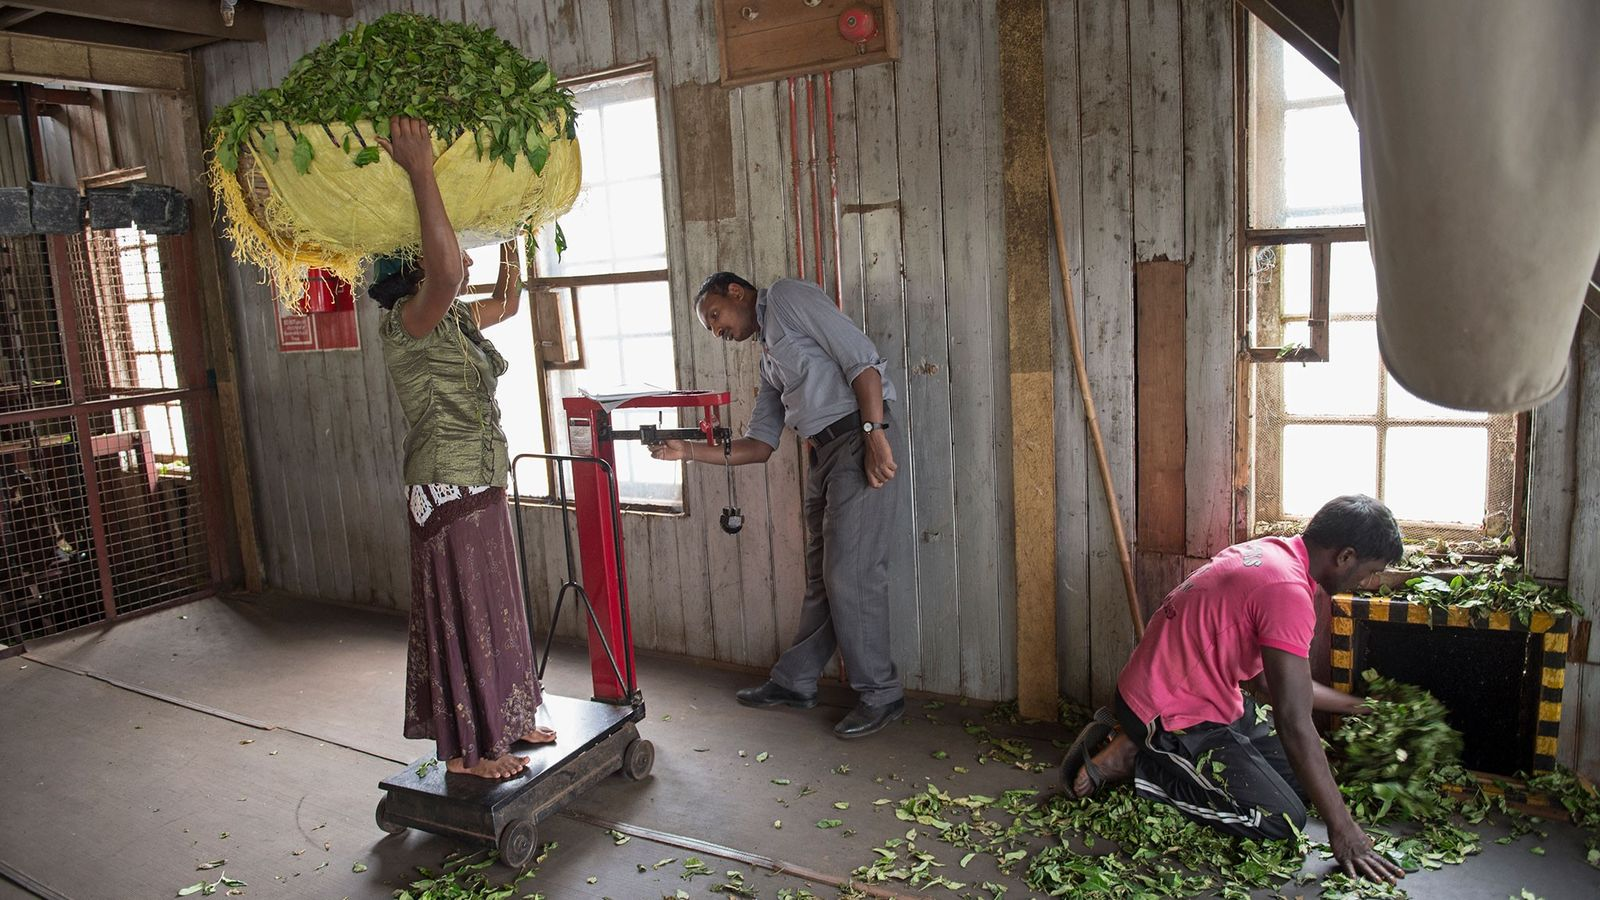 Inside Saint Clair's estate in Sri Lanka, workers weigh tea leaves.